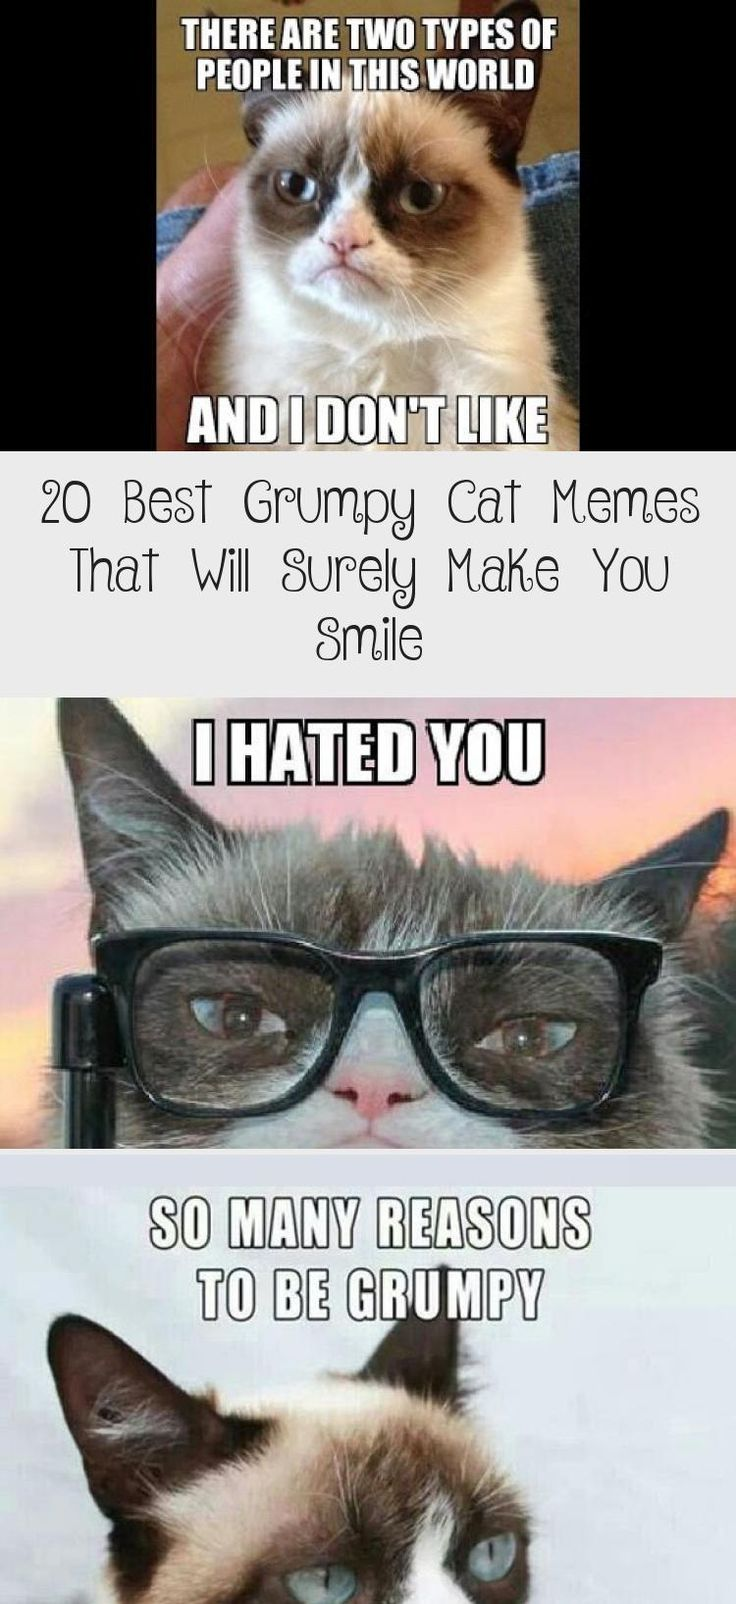 20 Best Grumpy Cat Memes That Will Surely Make You Smile